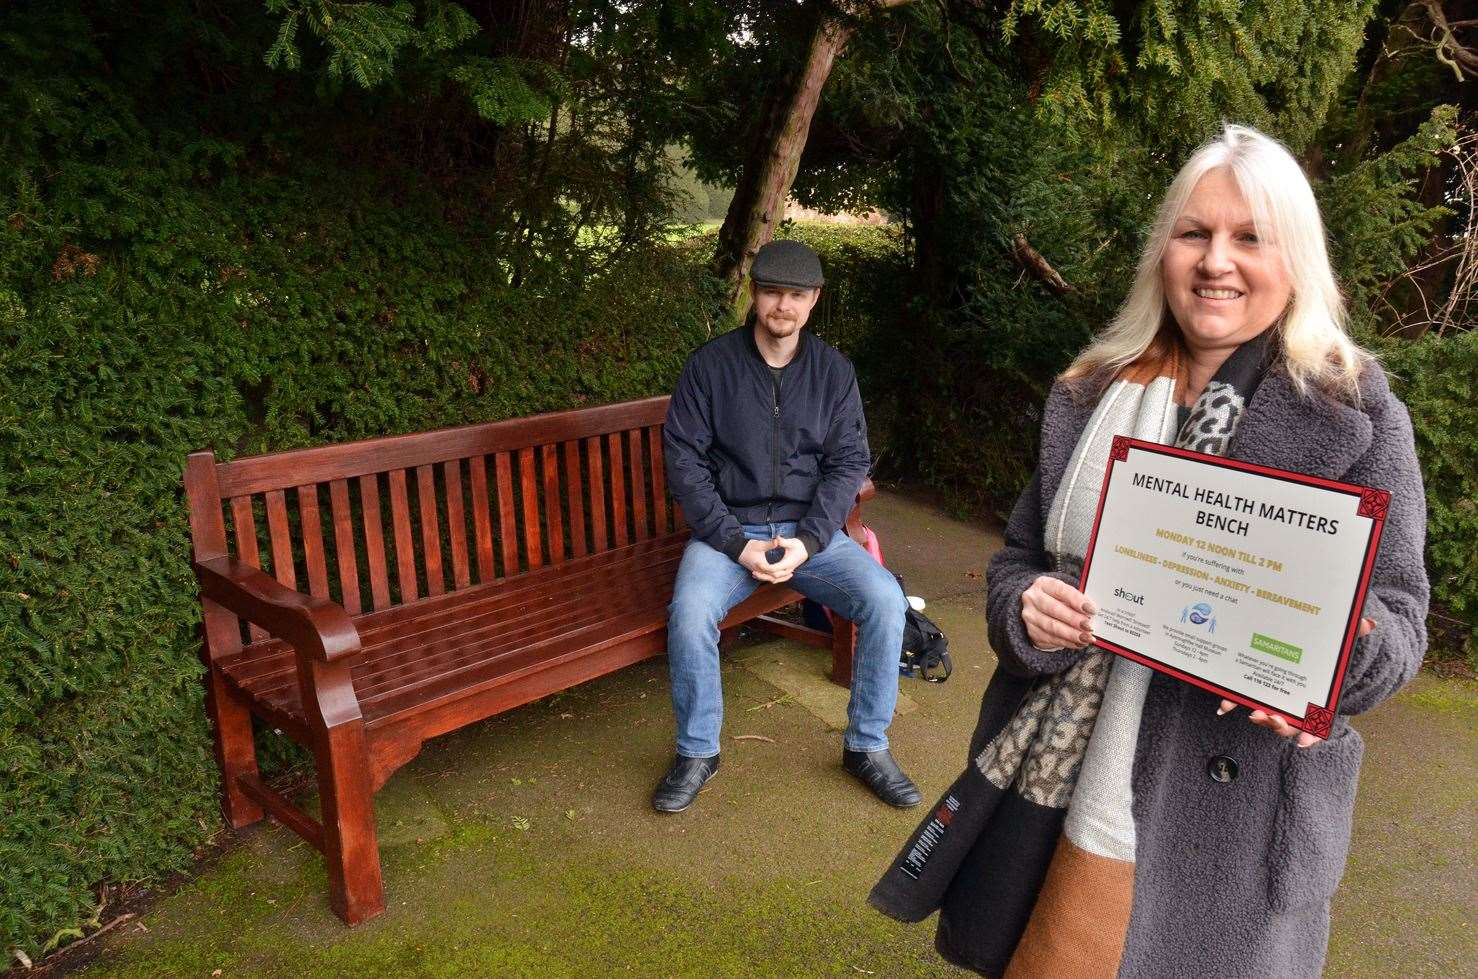 Vanessa Browning and Jack McLean pictured last year with the Community Mind Matters bench in Spalding's Ayscoughfee Gardens. The bench is available for people wanting to chat with a support worker about any anxieties or concerns.